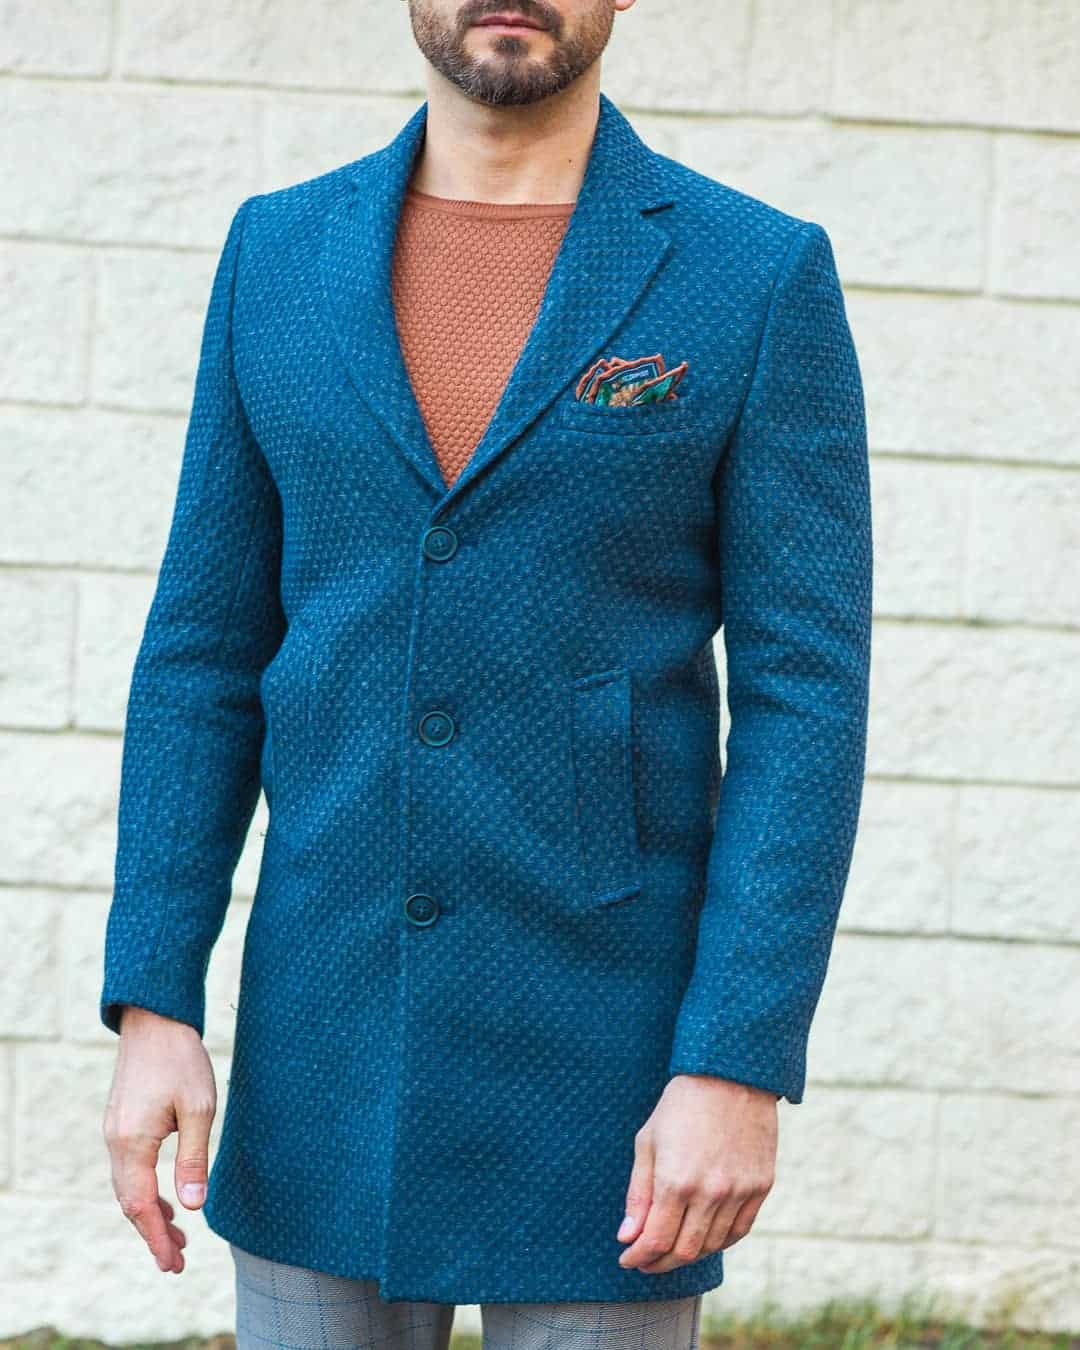 Mens Winter Coats 2021: Top Trends and Novelties (30+ Photos and Videos)